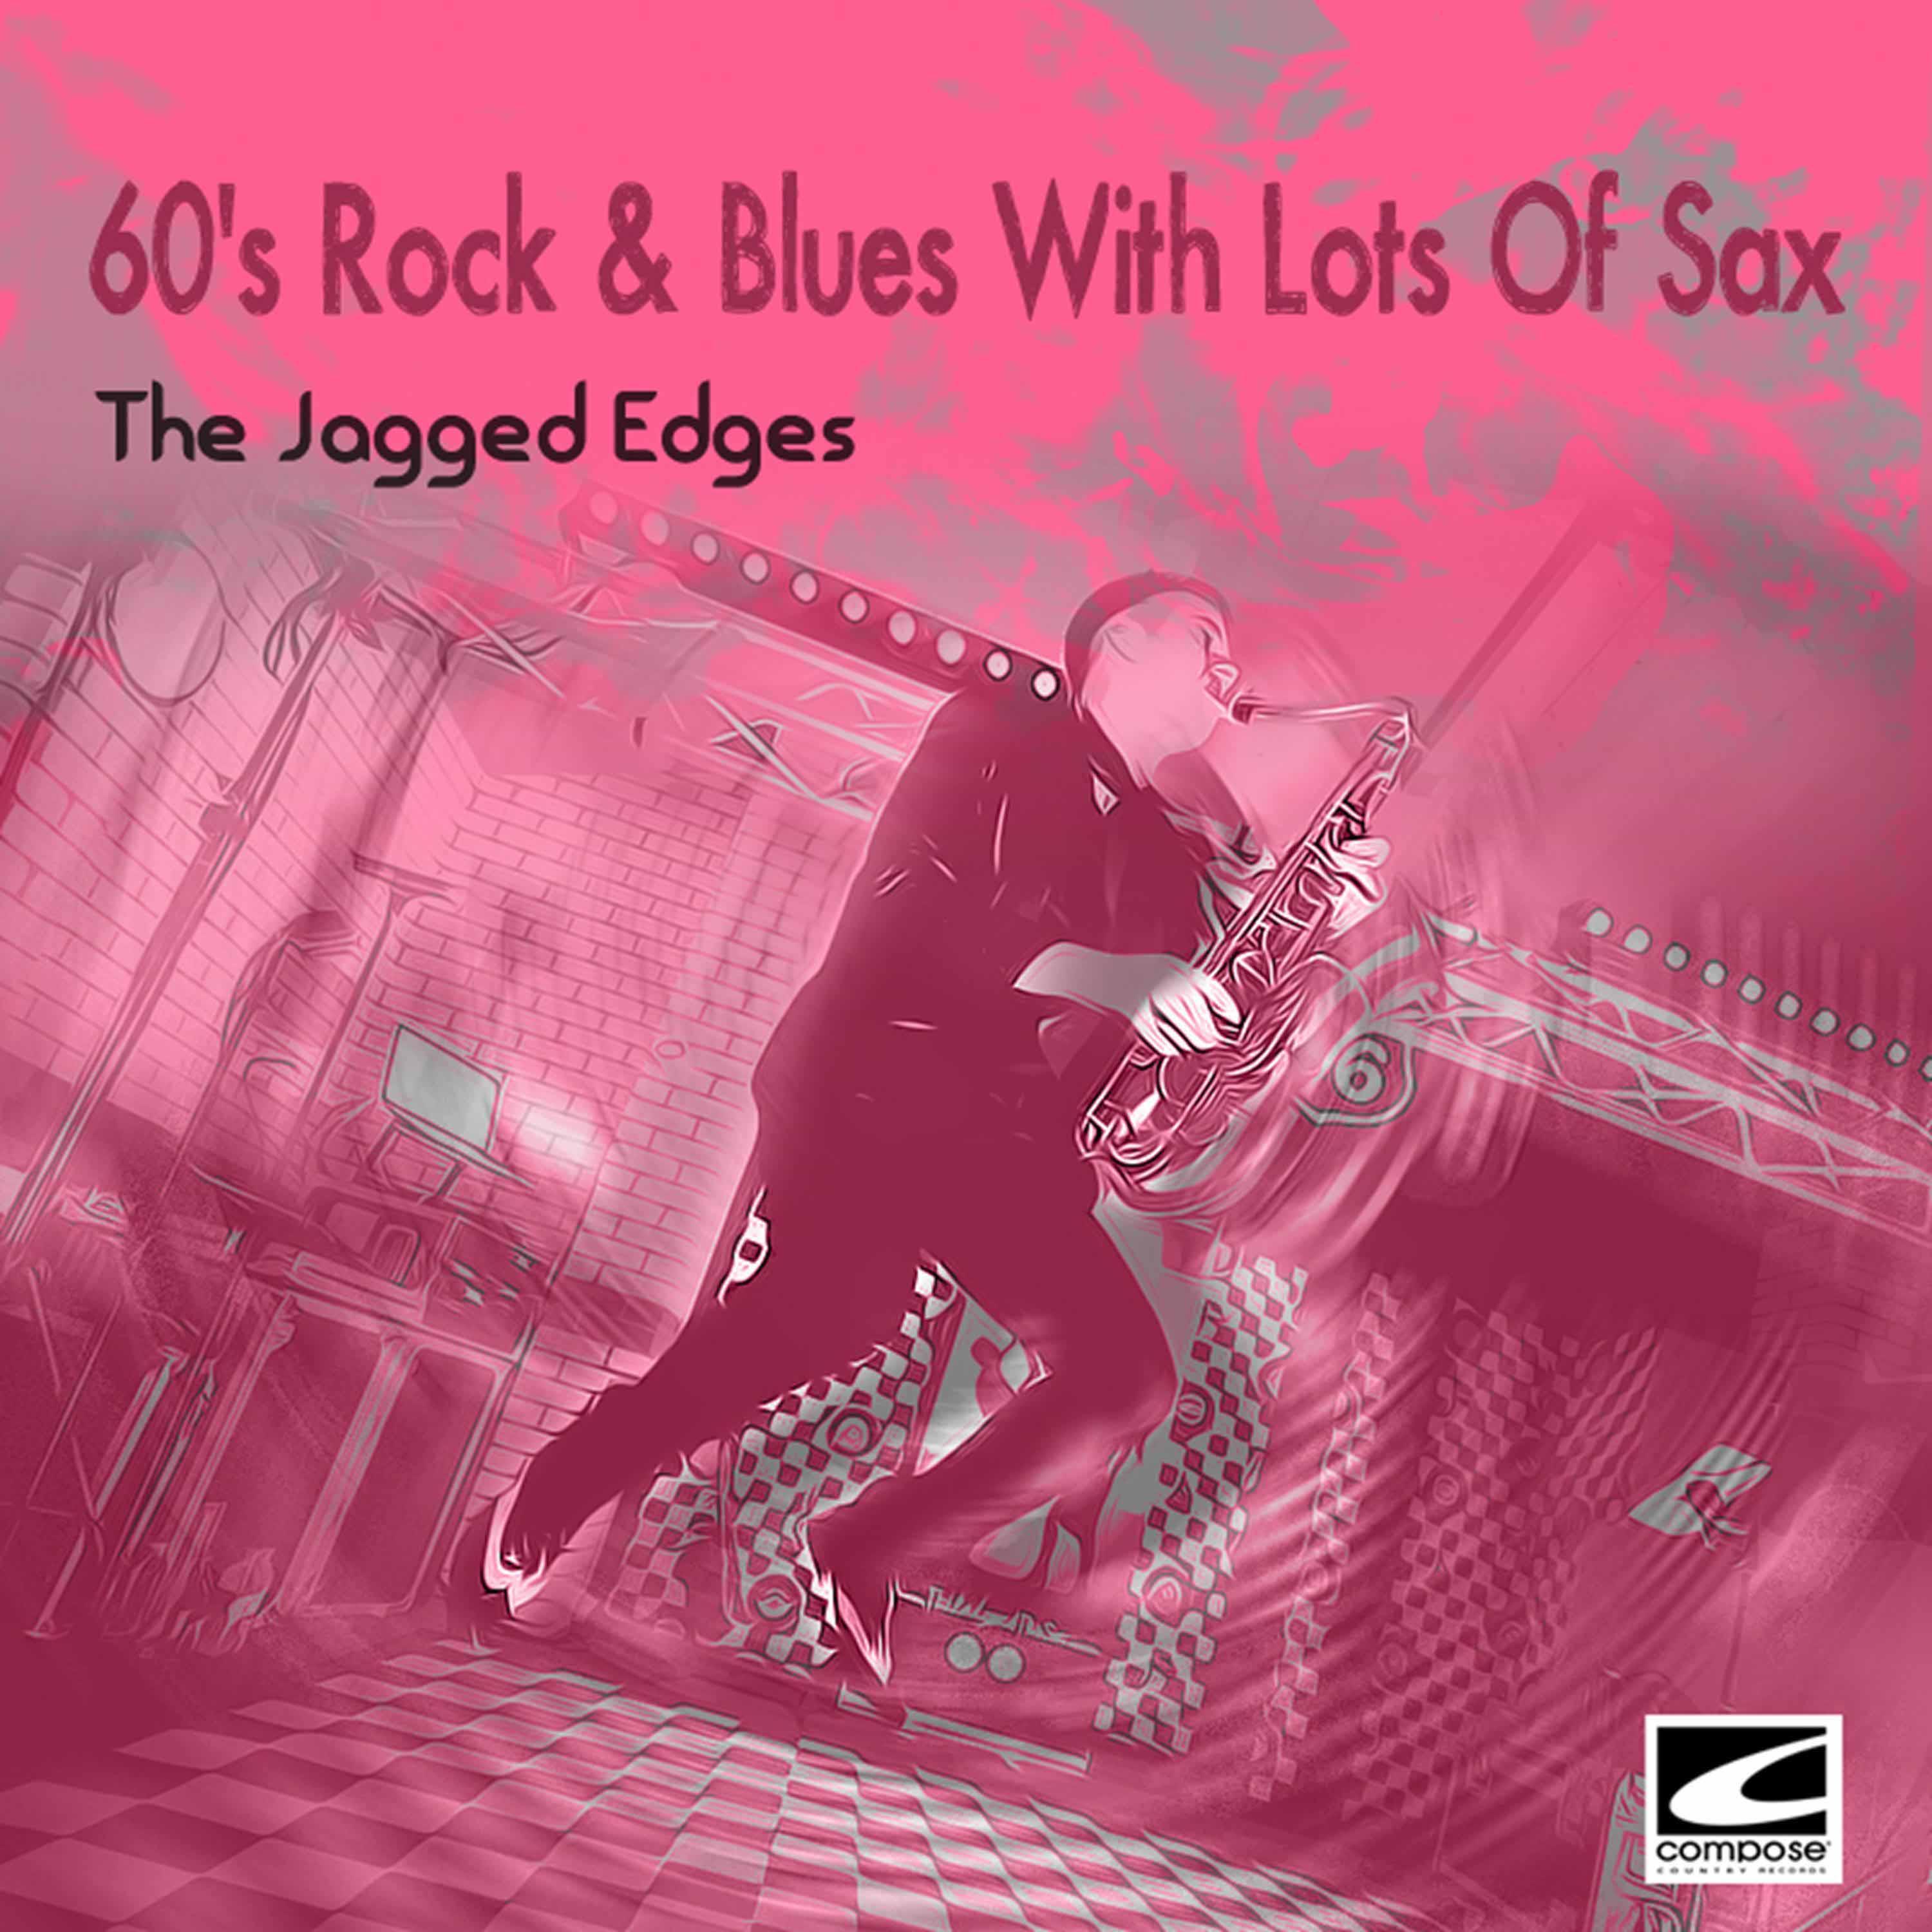 60's Rock & Blues with Lots of Sax